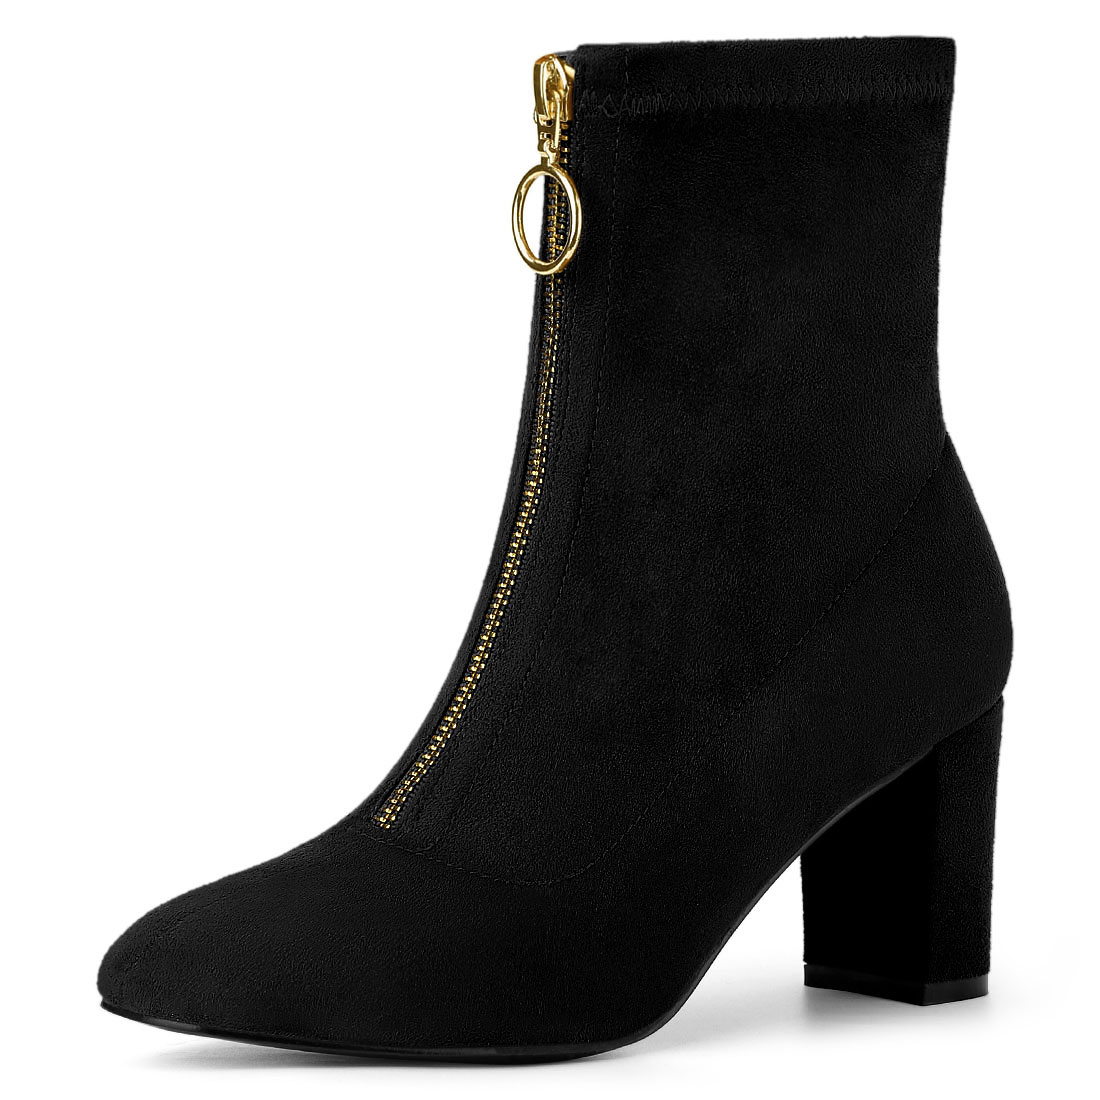 Allegra K Women's Front Zipper Chunky Heel Ankle Boots Black US 8